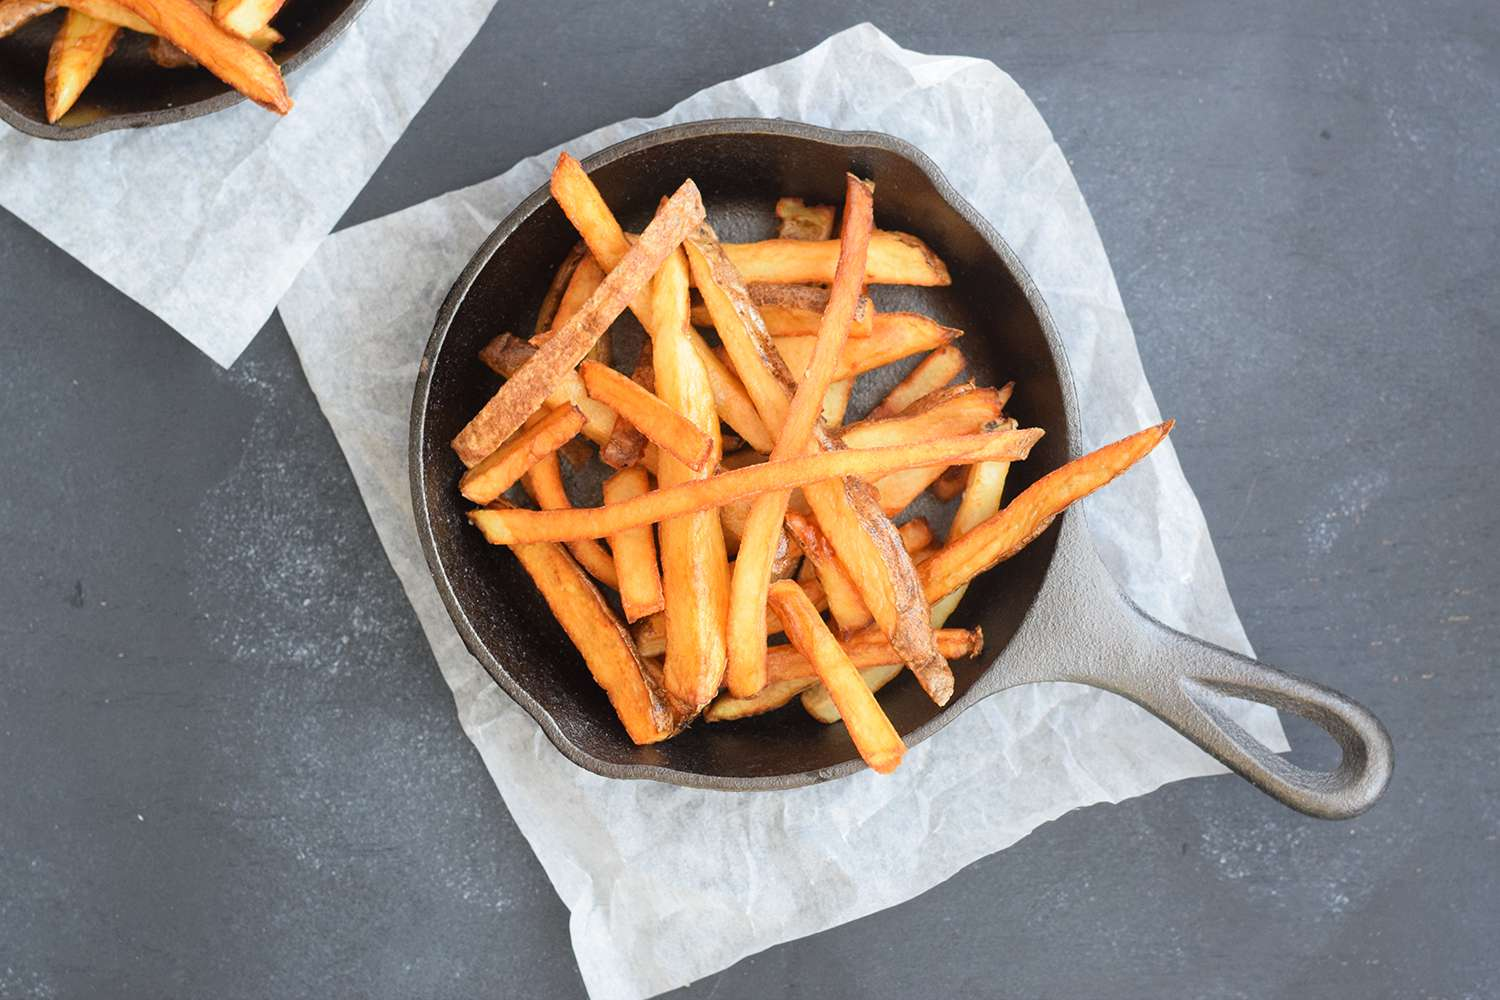 Add fries to a warm skillet